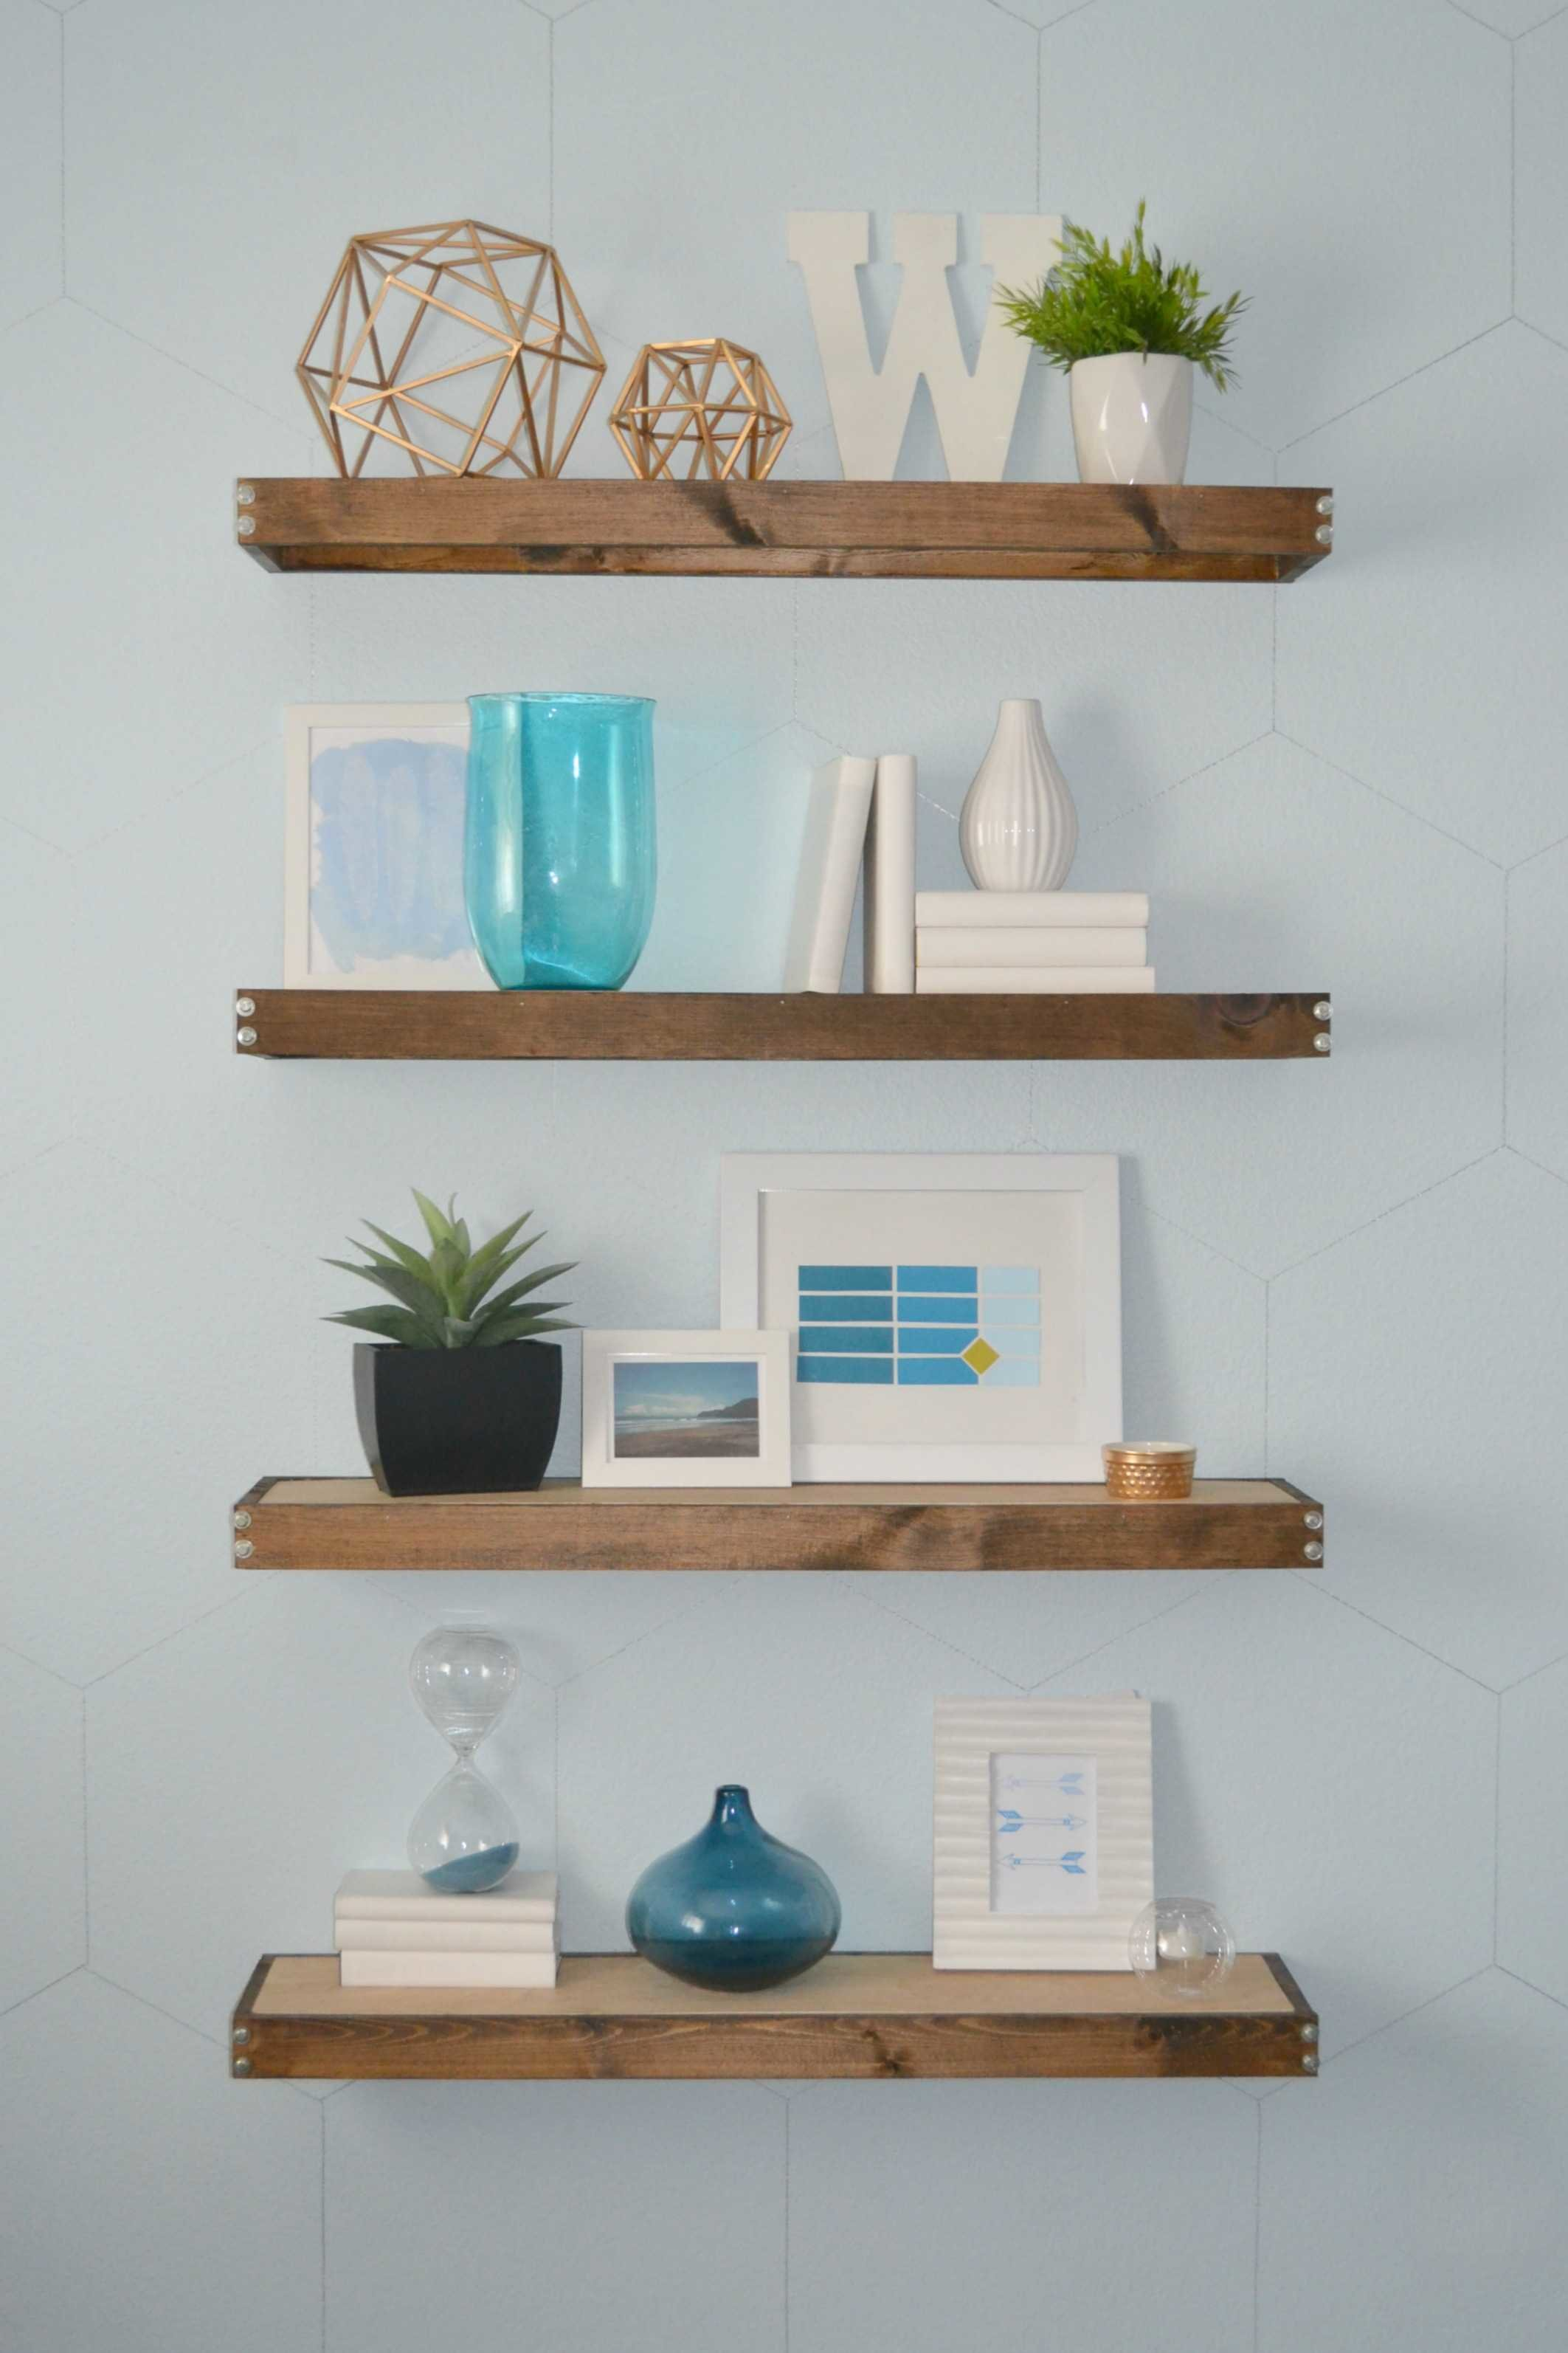 diy rustic modern floating shelves part one thick white office furniture computer table wall mounted open shelving coat hooks with shelf safe hidden compartment french cleat